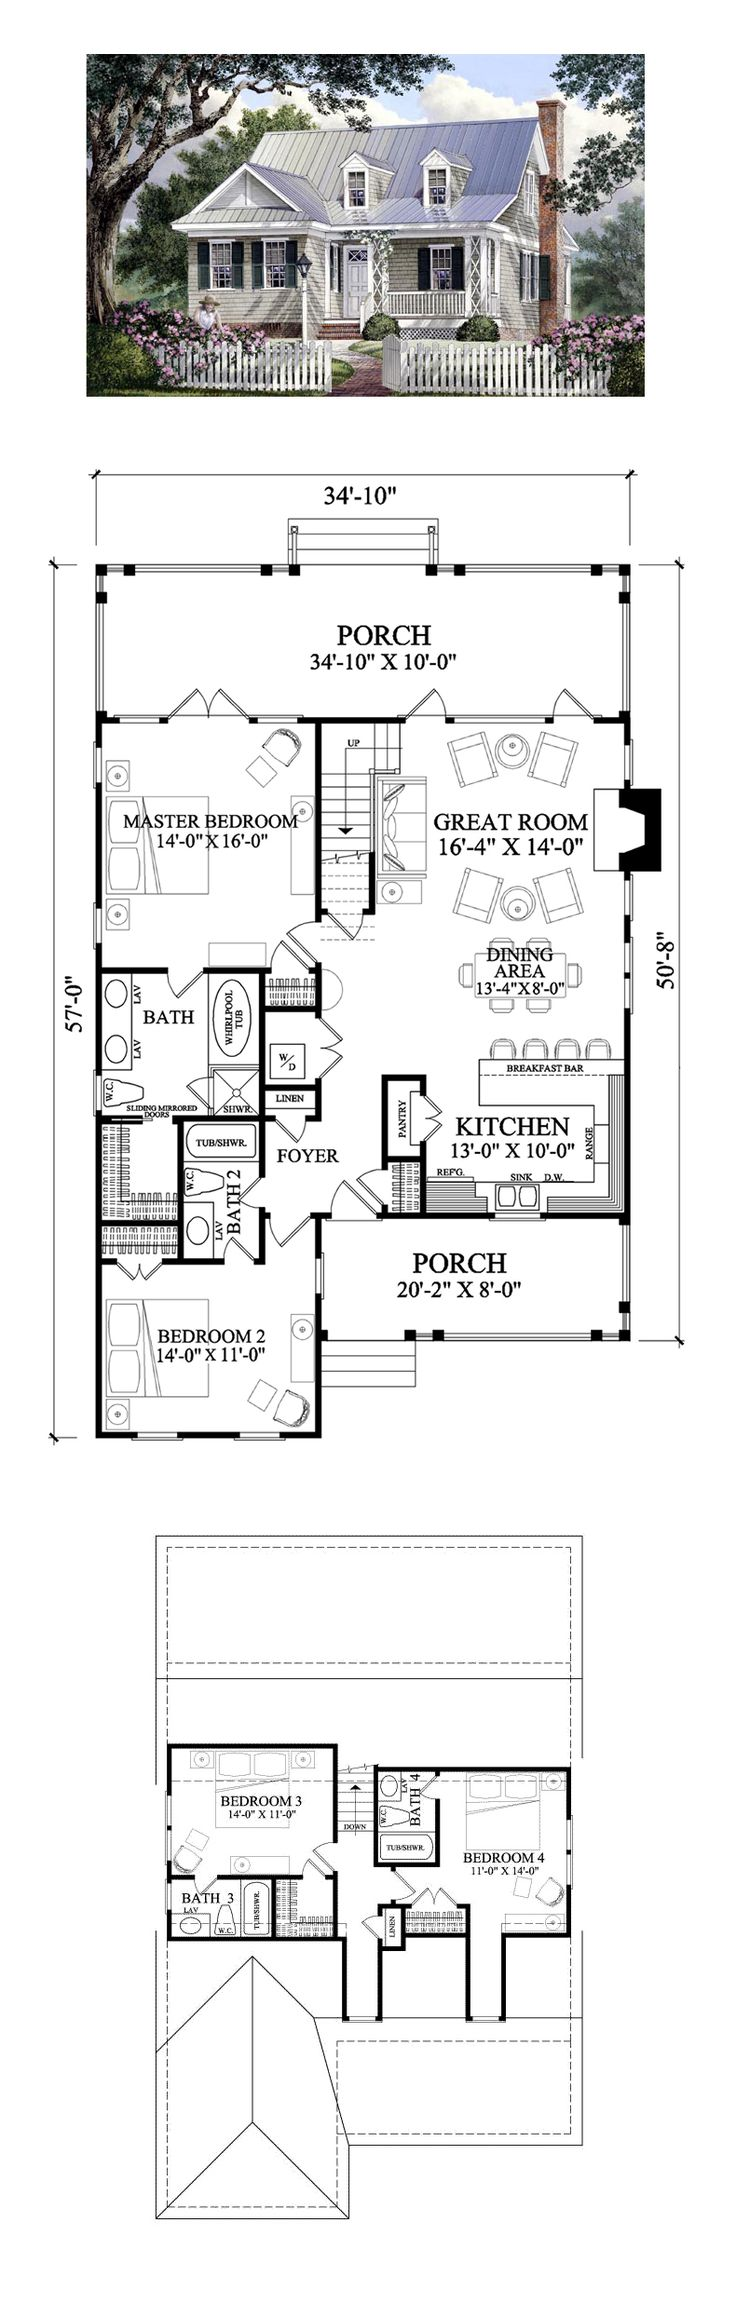 54 best Cape Cod House Plans images on Pinterest | Cape cod homes ...